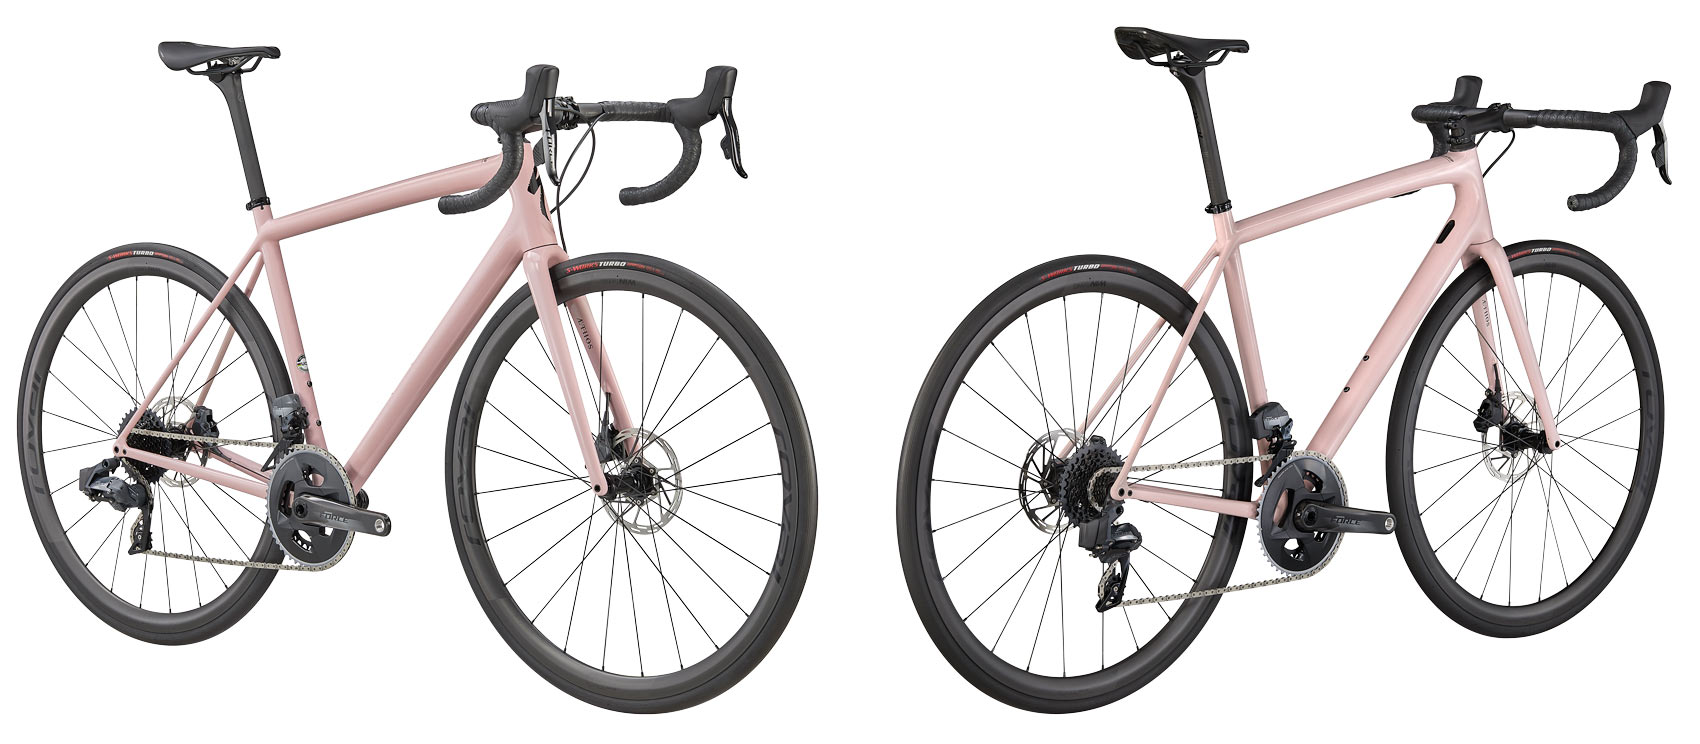 new specialized aethos road bike with sram force etap axs build spec in pink blush rose color